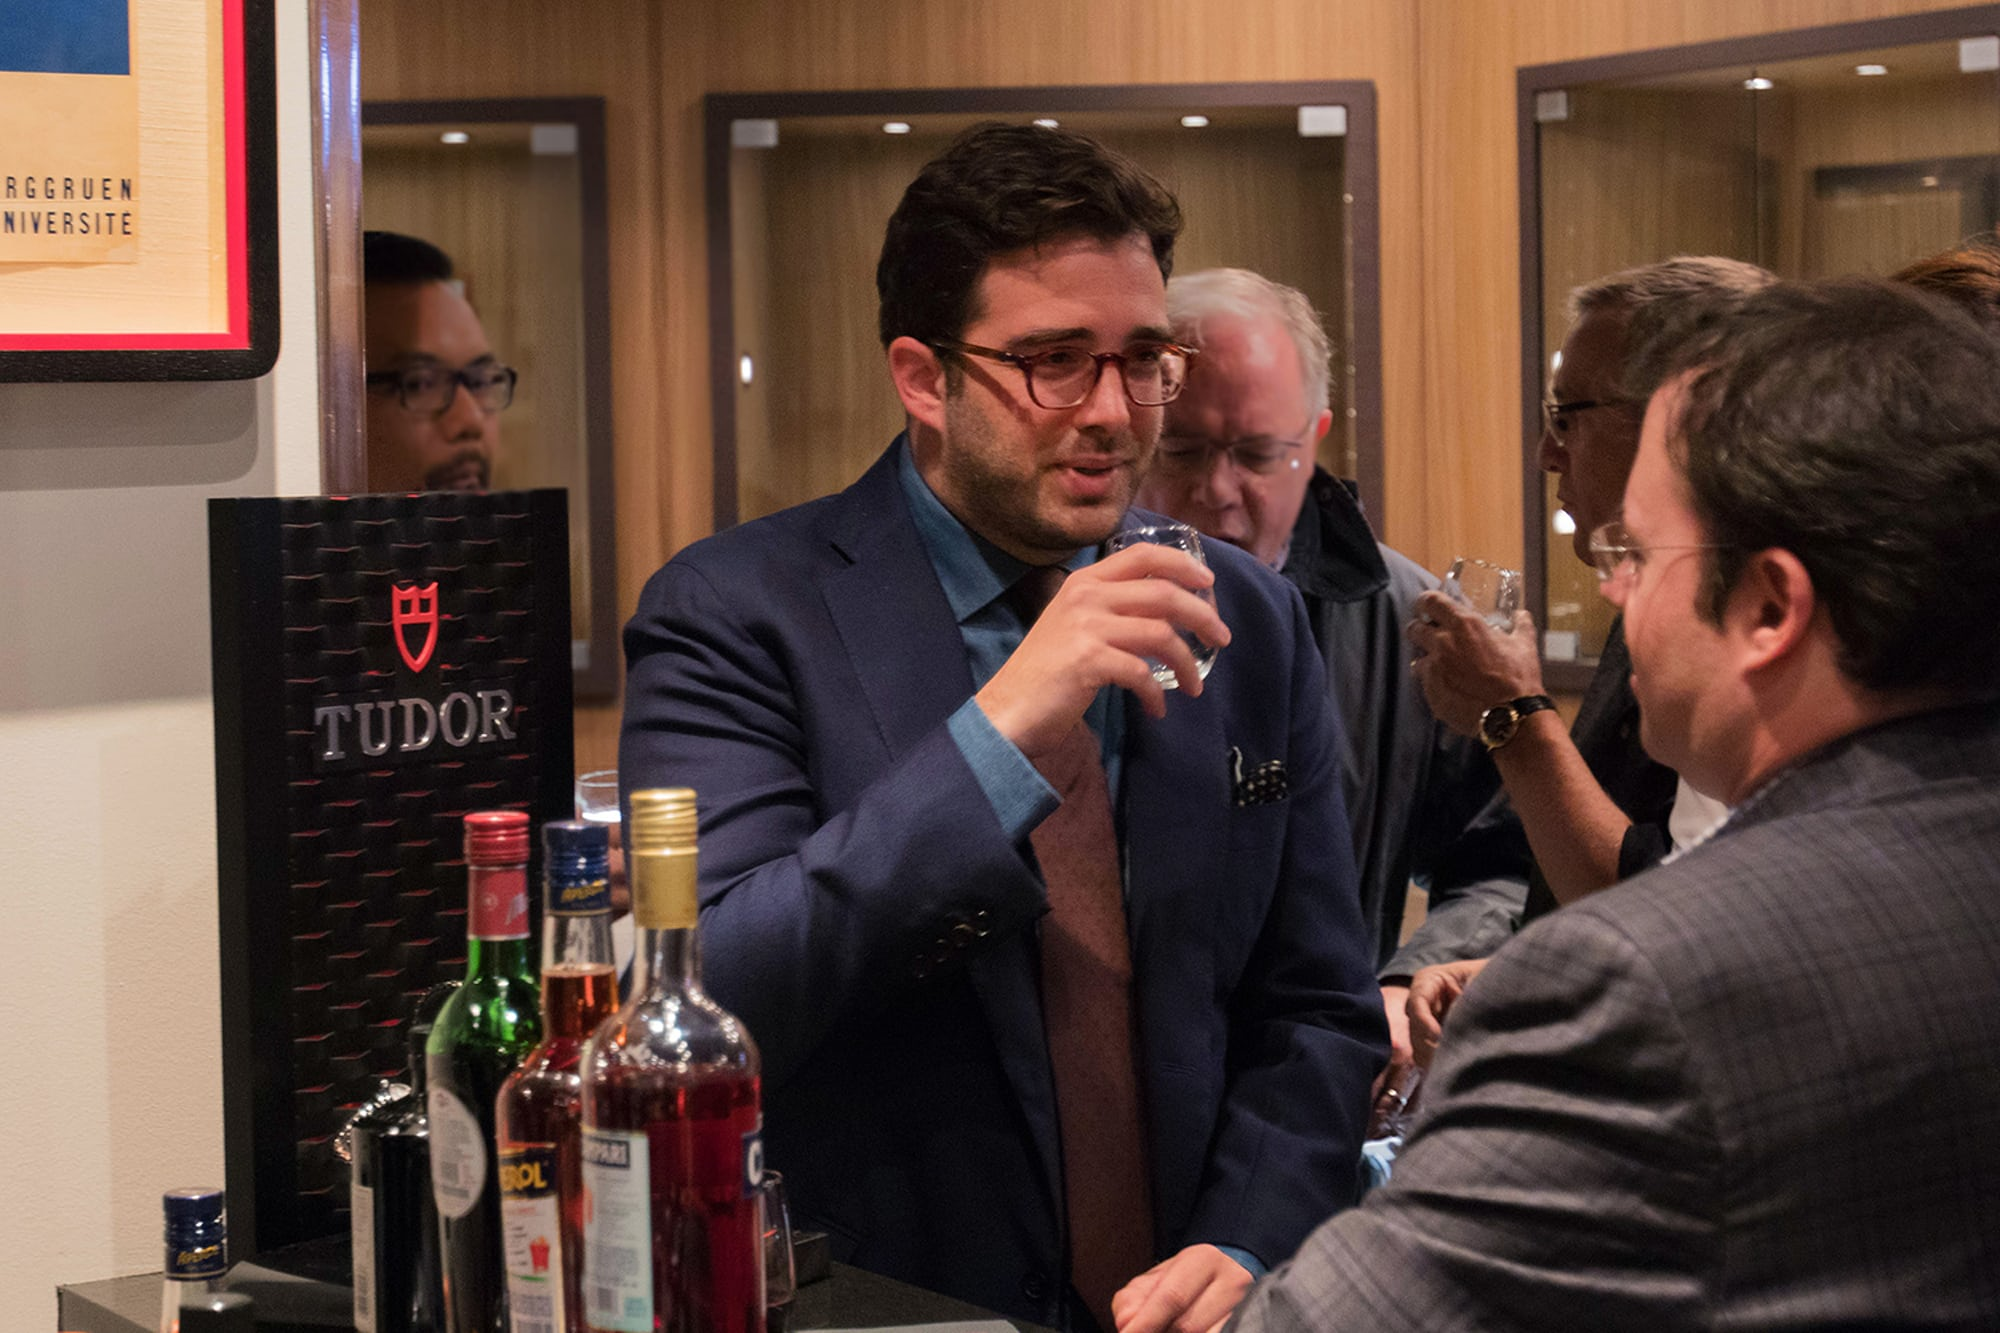 Photo Report: The Tudor Baselworld Novelties At Swiss Fine Timing In Chicago Photo Report: The Tudor Baselworld Novelties At Swiss Fine Timing In Chicago  Just People Observing only 9